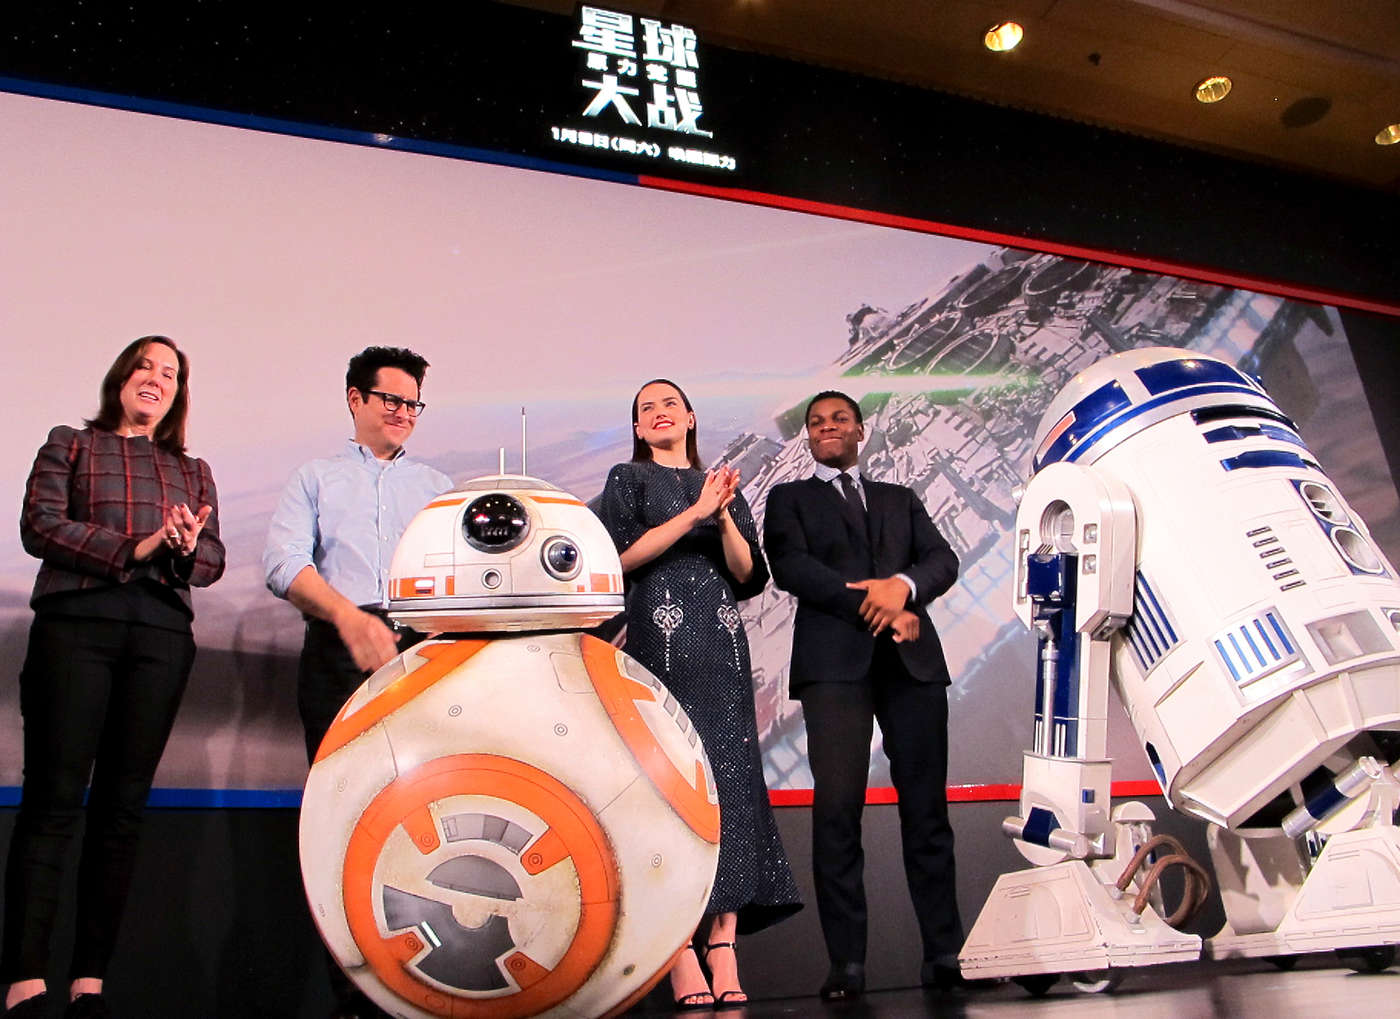 Daisy Ridley Star Wars The Force Awakens Photocall in Shanghai